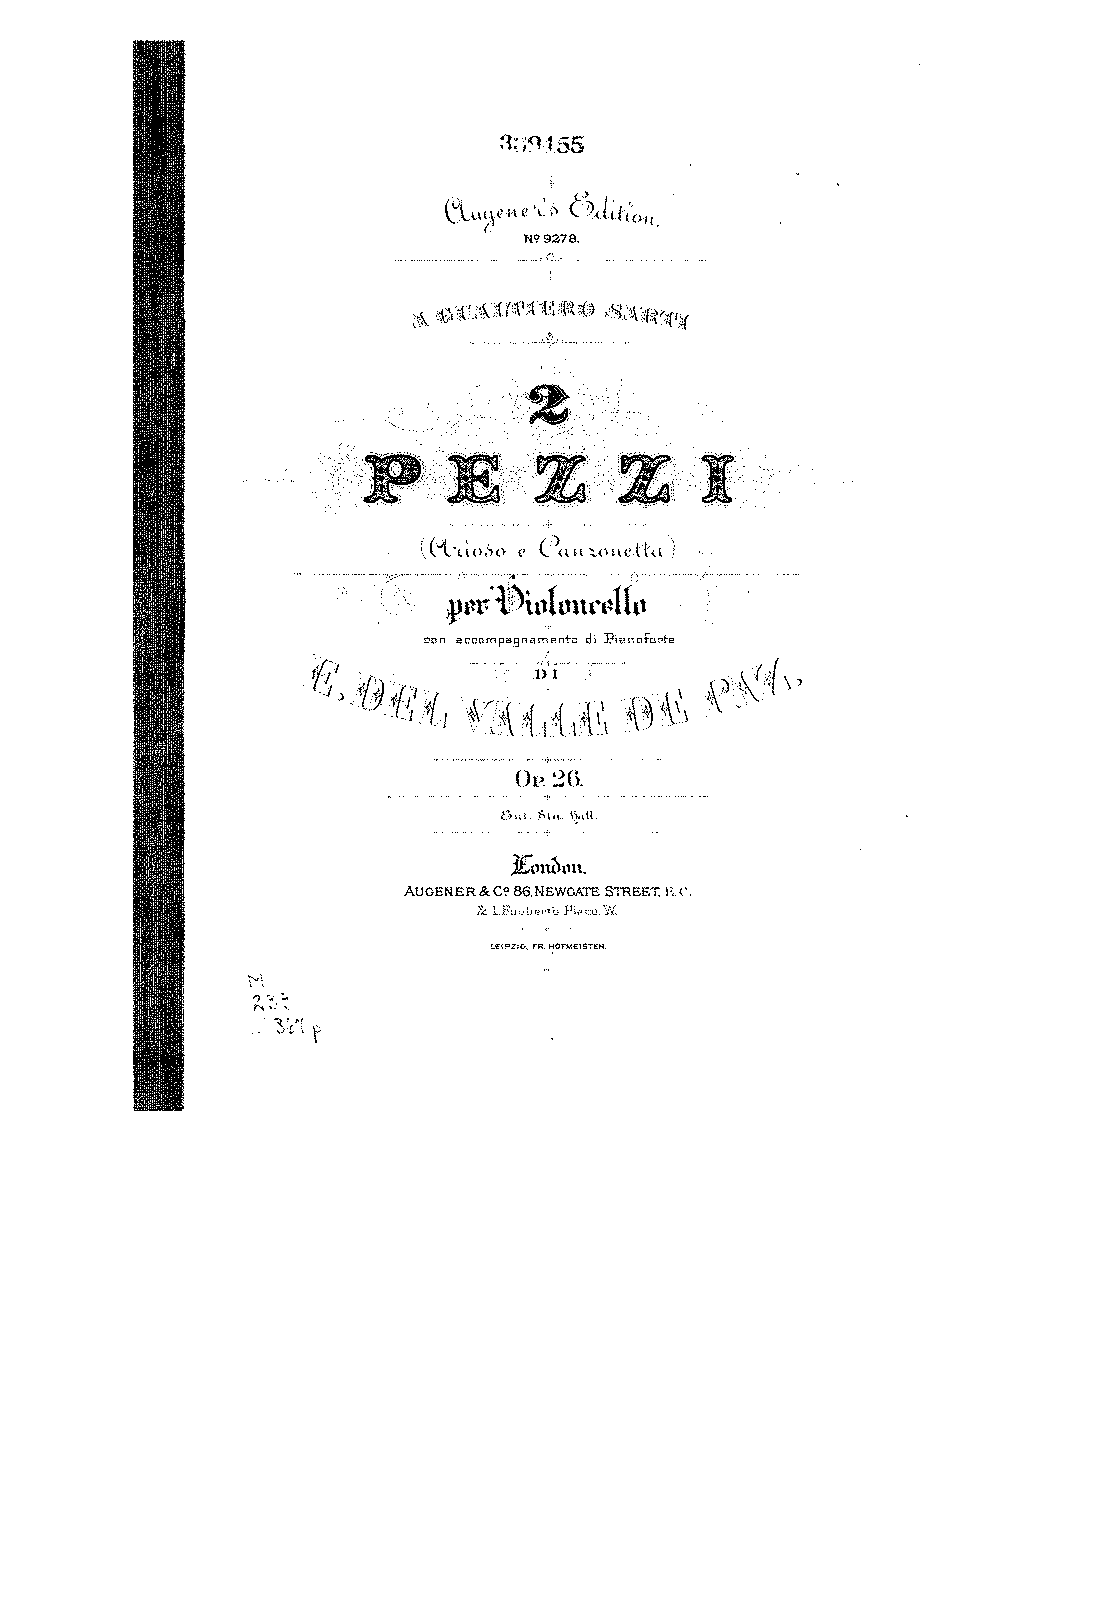 PMLP136113-Del Valle de Paz - 2 Pezzi (Arioso e canzonetta) for Cello and Piano Op.26 score.pdf